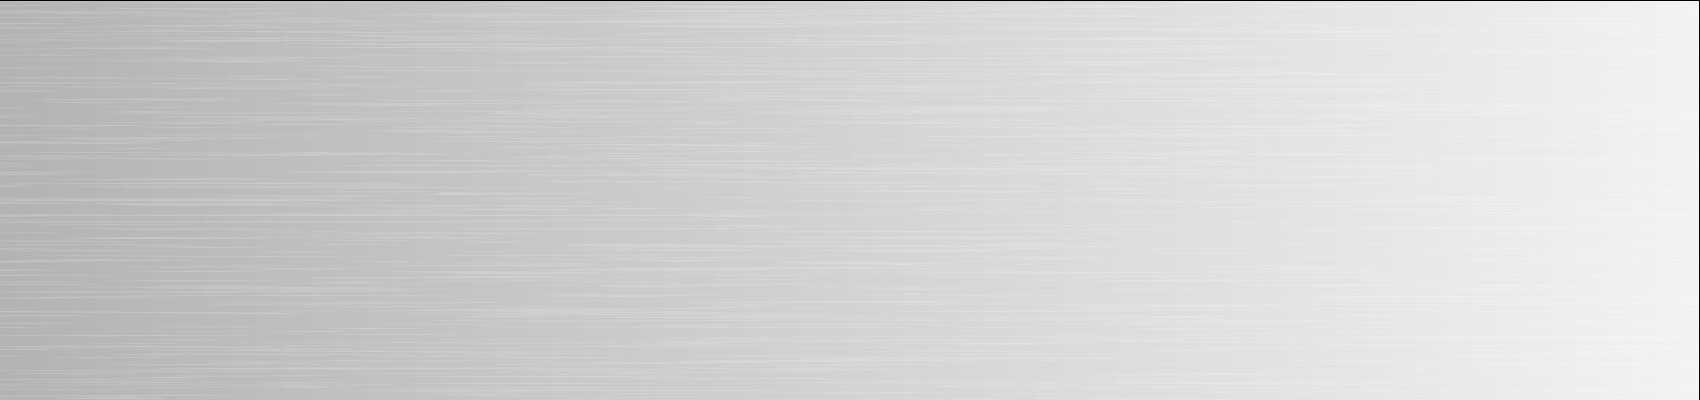 background-grey-1700x400